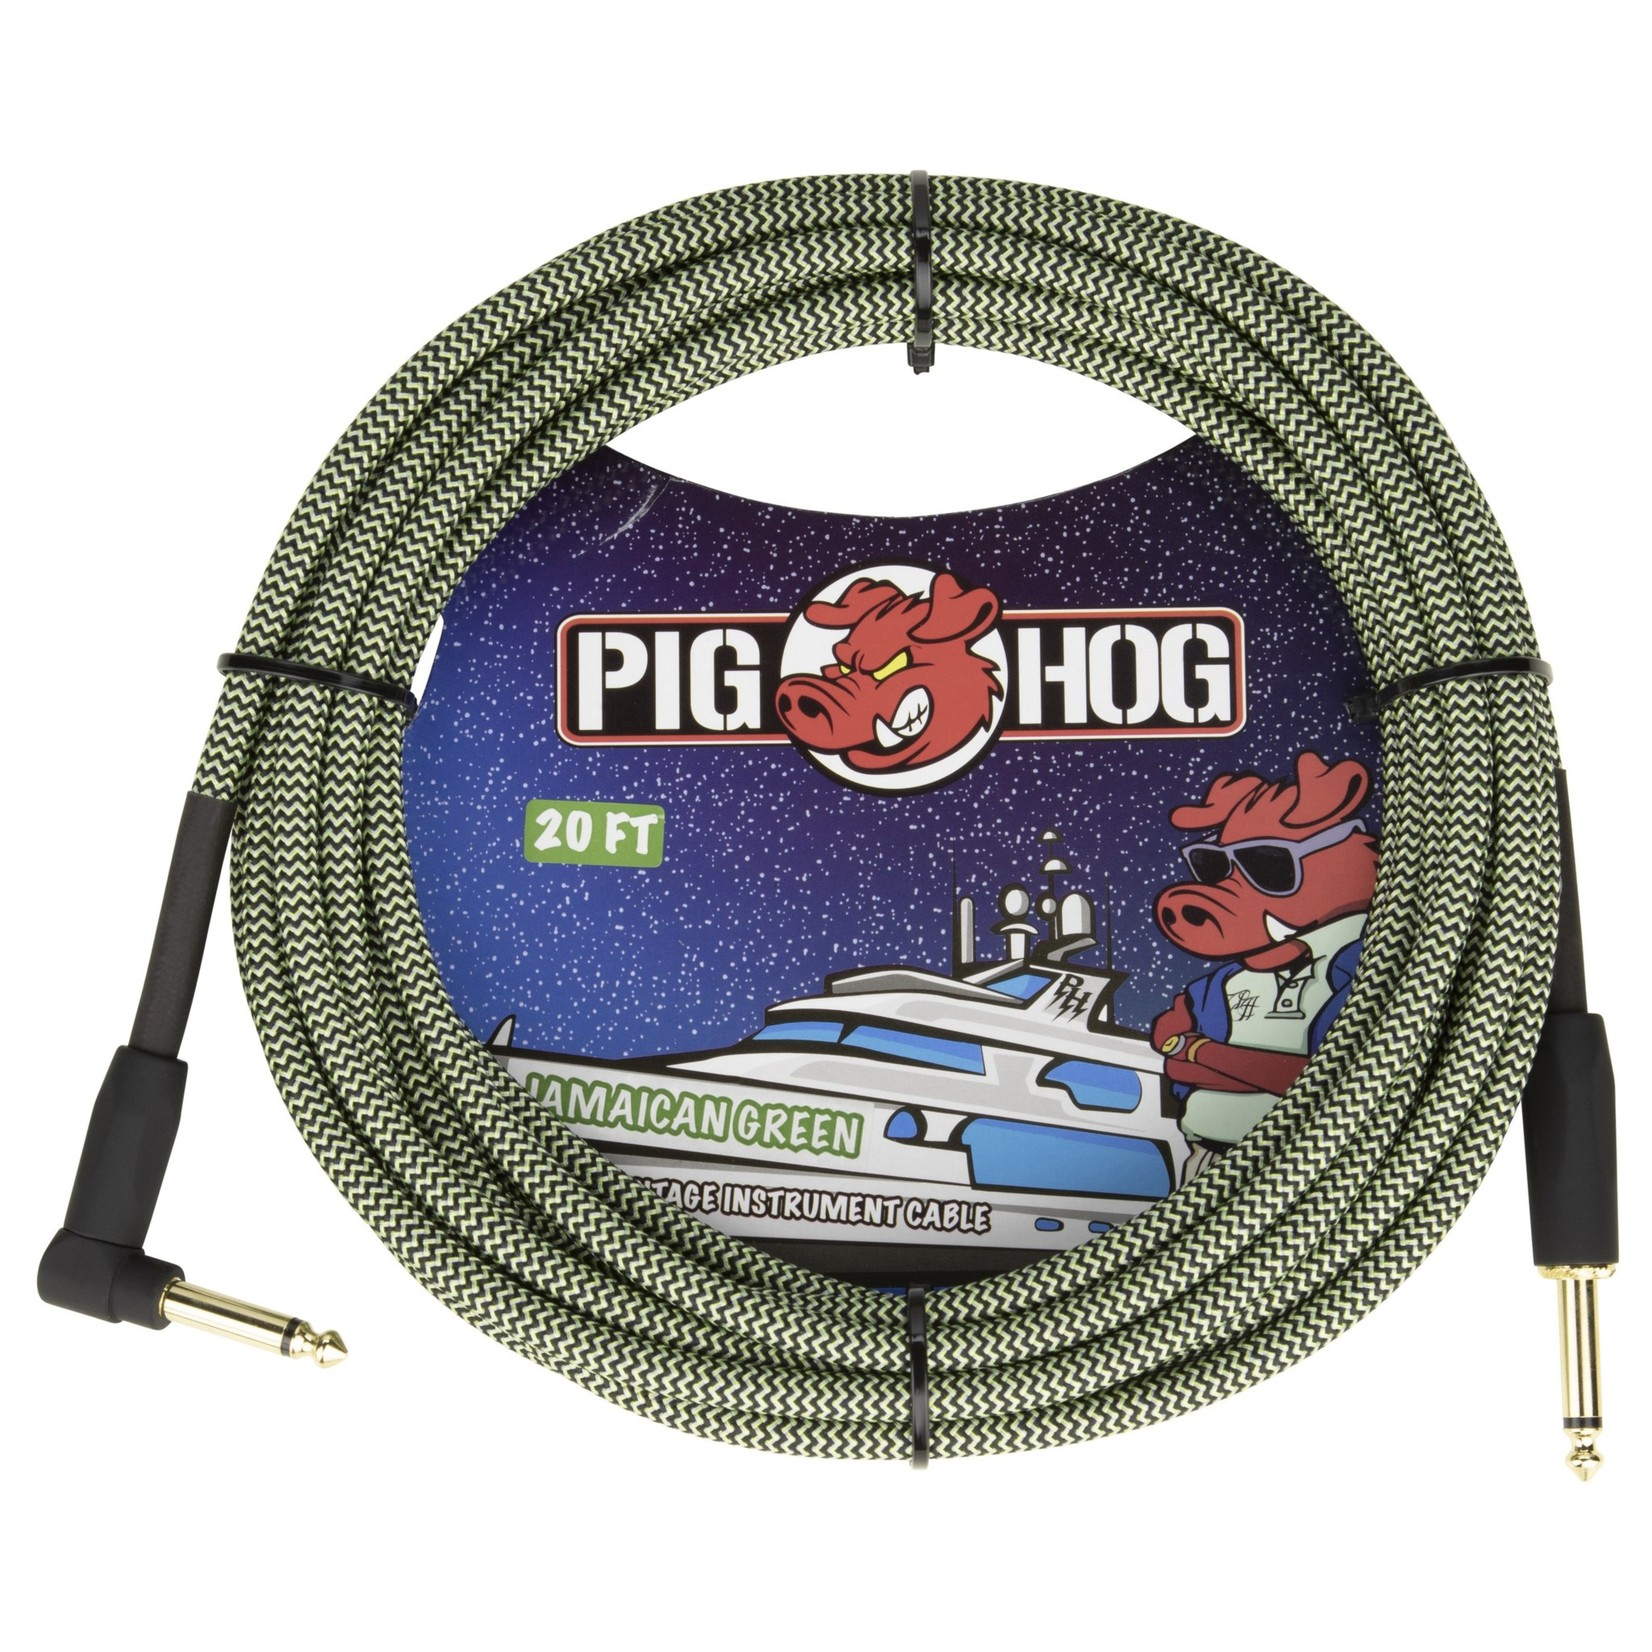 "Pig Hog Pig Hog 20-Foot Vintage Woven Instrument Cable, 1/4"" Straight-Right Angle, Jamaican Green - New 2020"